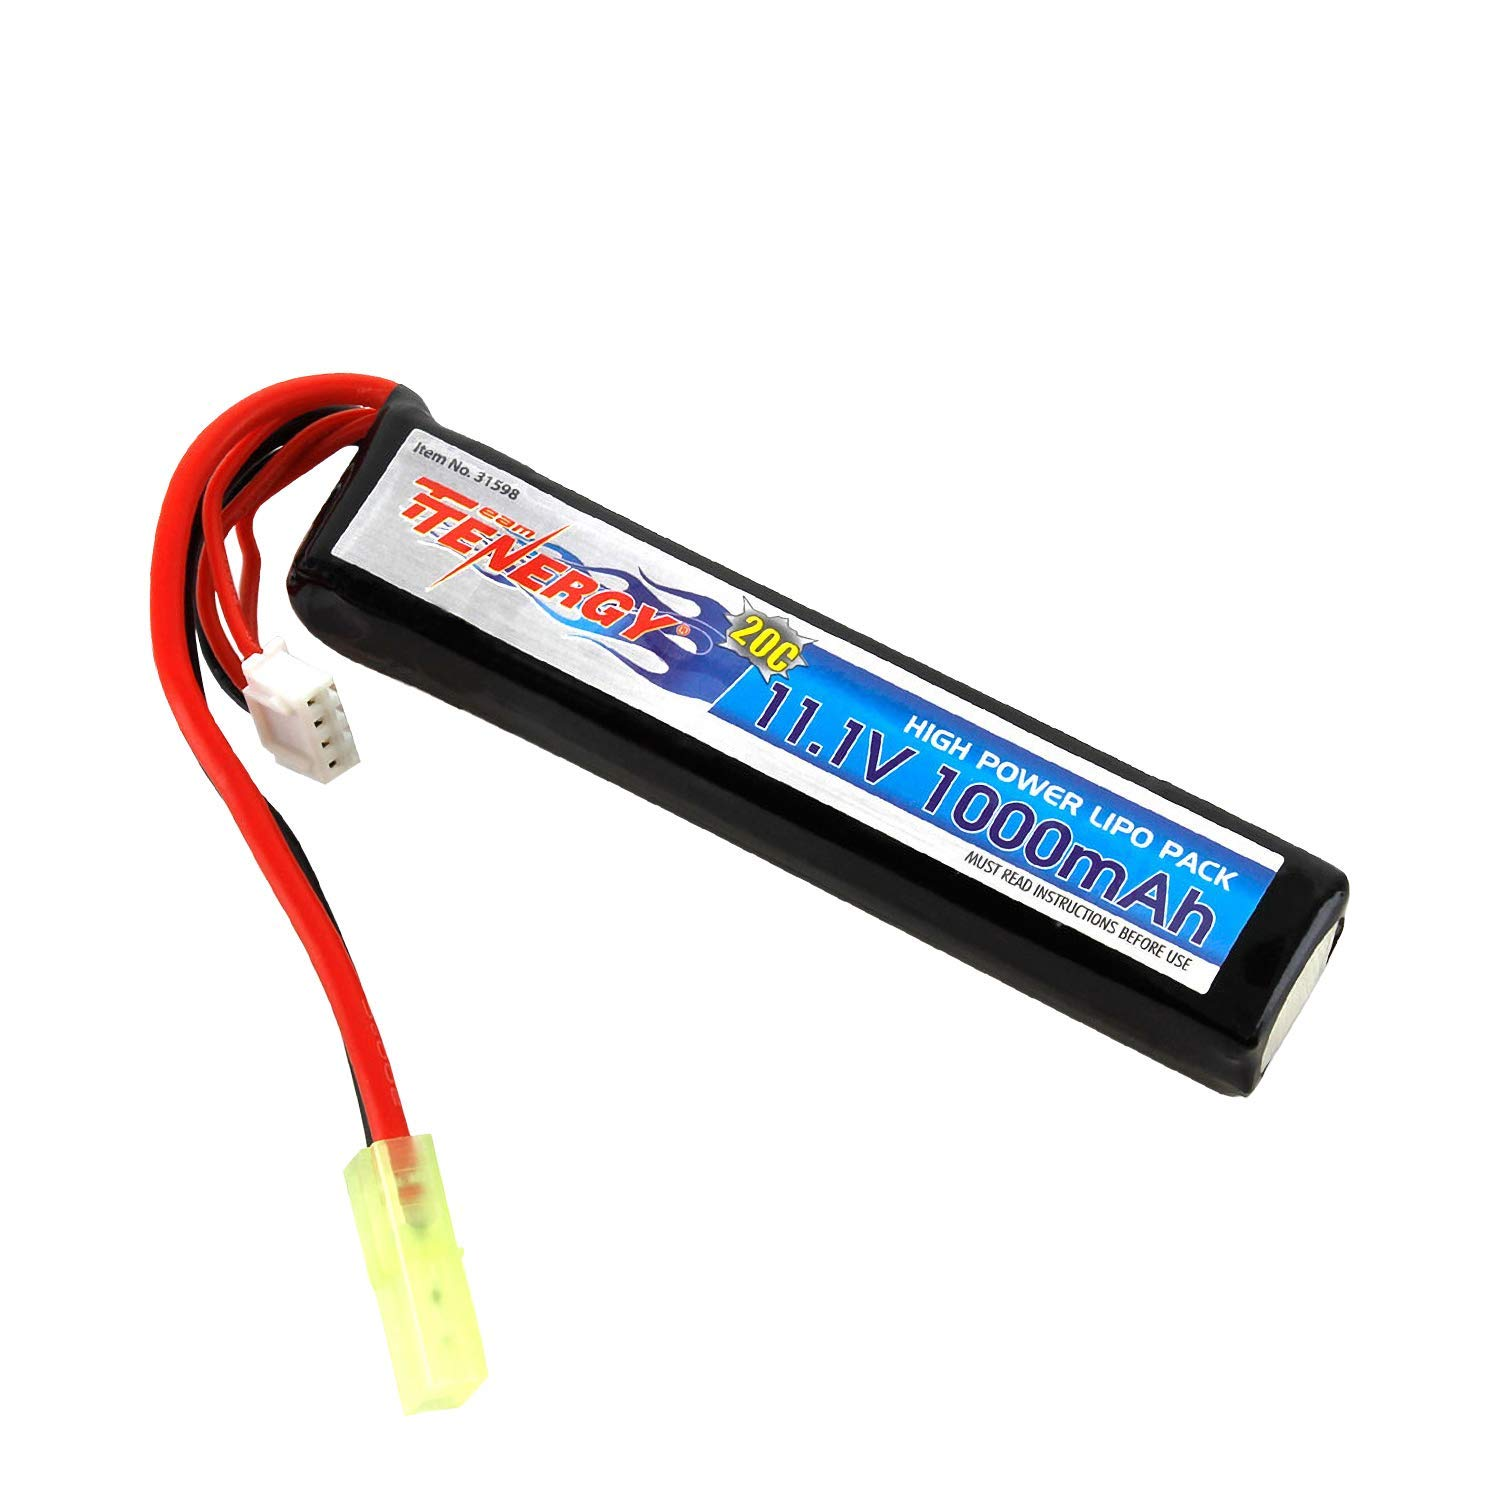 Tenergy 11.1V LiPo Airsoft Battery 1000mAh 20C Stick Battery Pack with Mini Tamiya Connector for Airsoft Guns M4, AK47, MP5K, MP5, M14, M60, G36